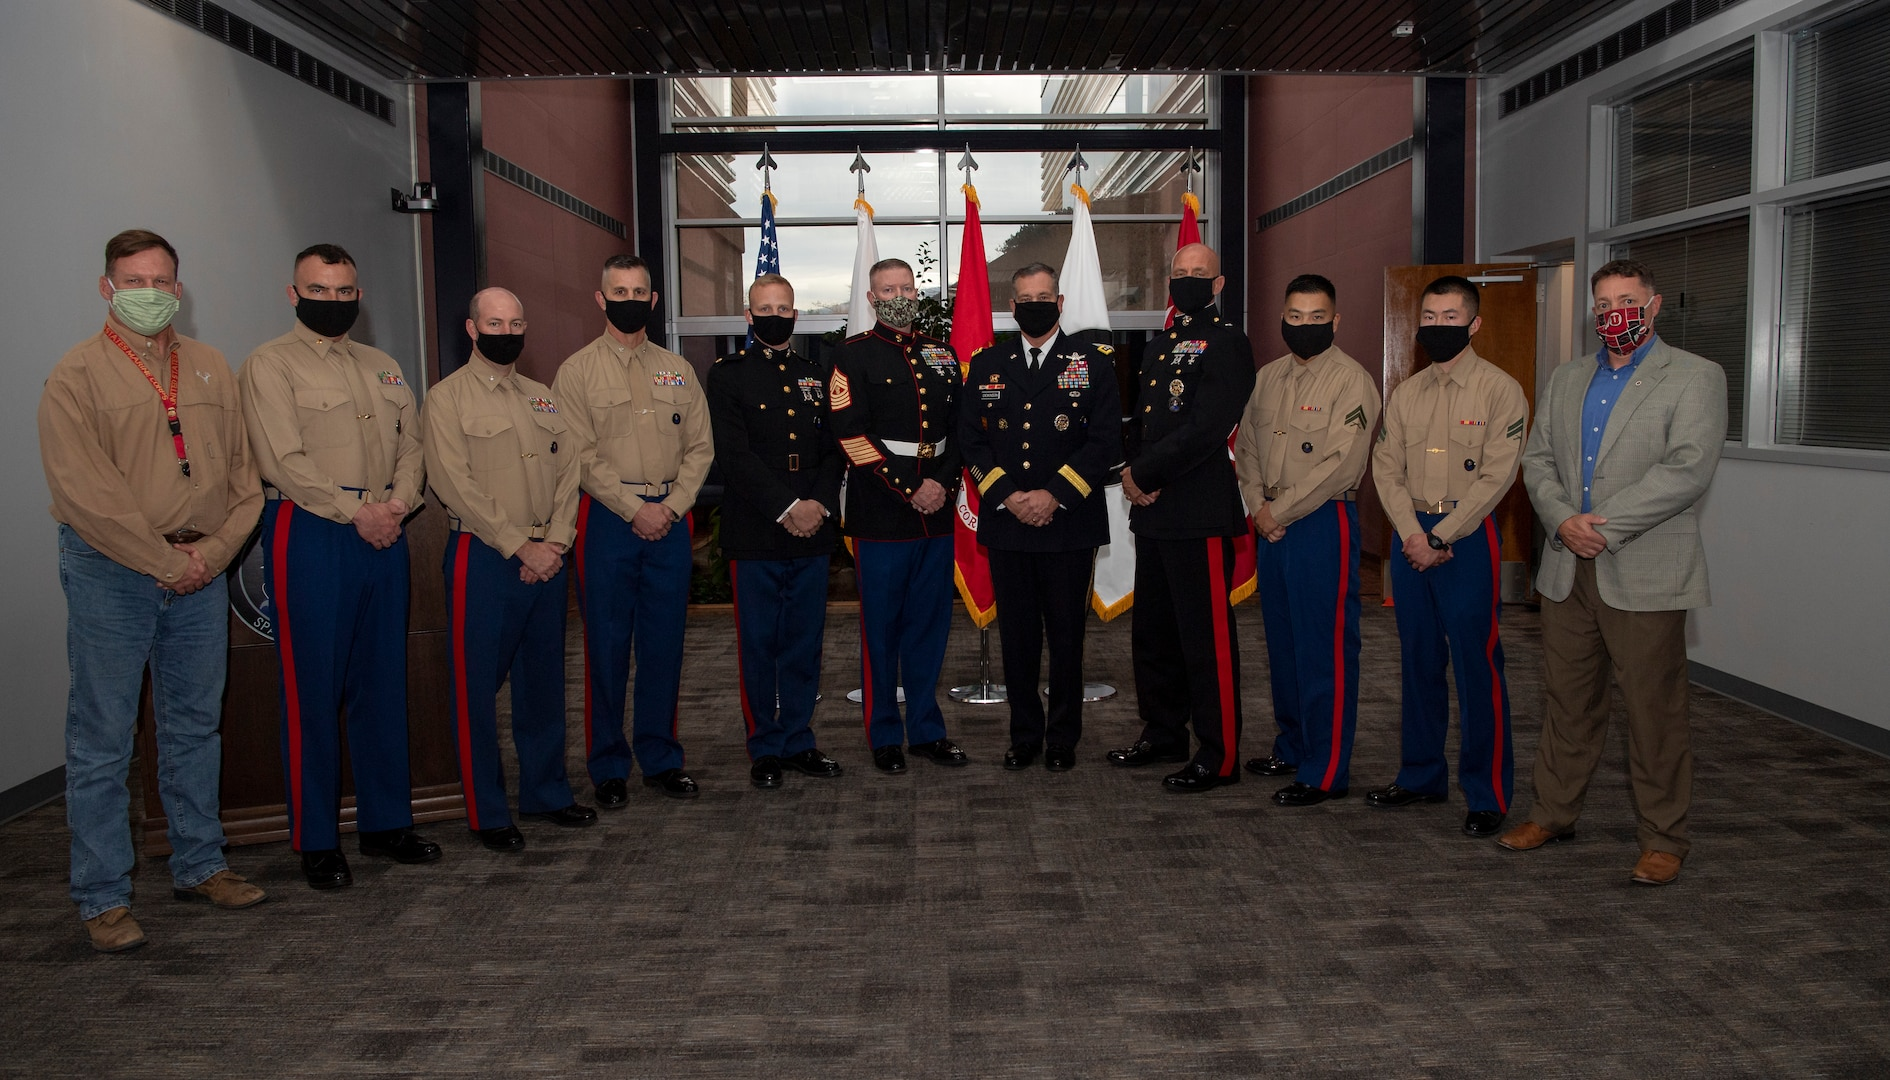 U.S. Space Command hosted a U.S. Marine Corps birthday celebration Nov. 6 at Peterson Air Force Base, Colorado. In attendance were U.S. Army Gen. James Dickinson, USSPACECOM commander; Marine Corps Brig. Gen. Joseph Matos, USSPACECOM command, control, communications, computers and cyber director; and Master Gunnery Sgt. Scott Stalker, USSPACECOM command senior enlisted leader. Also participating were current and former Marines serving in USSPACECOM headquarters. The U.S. Marine Corps turned 245 years old Nov. 10, 2020.